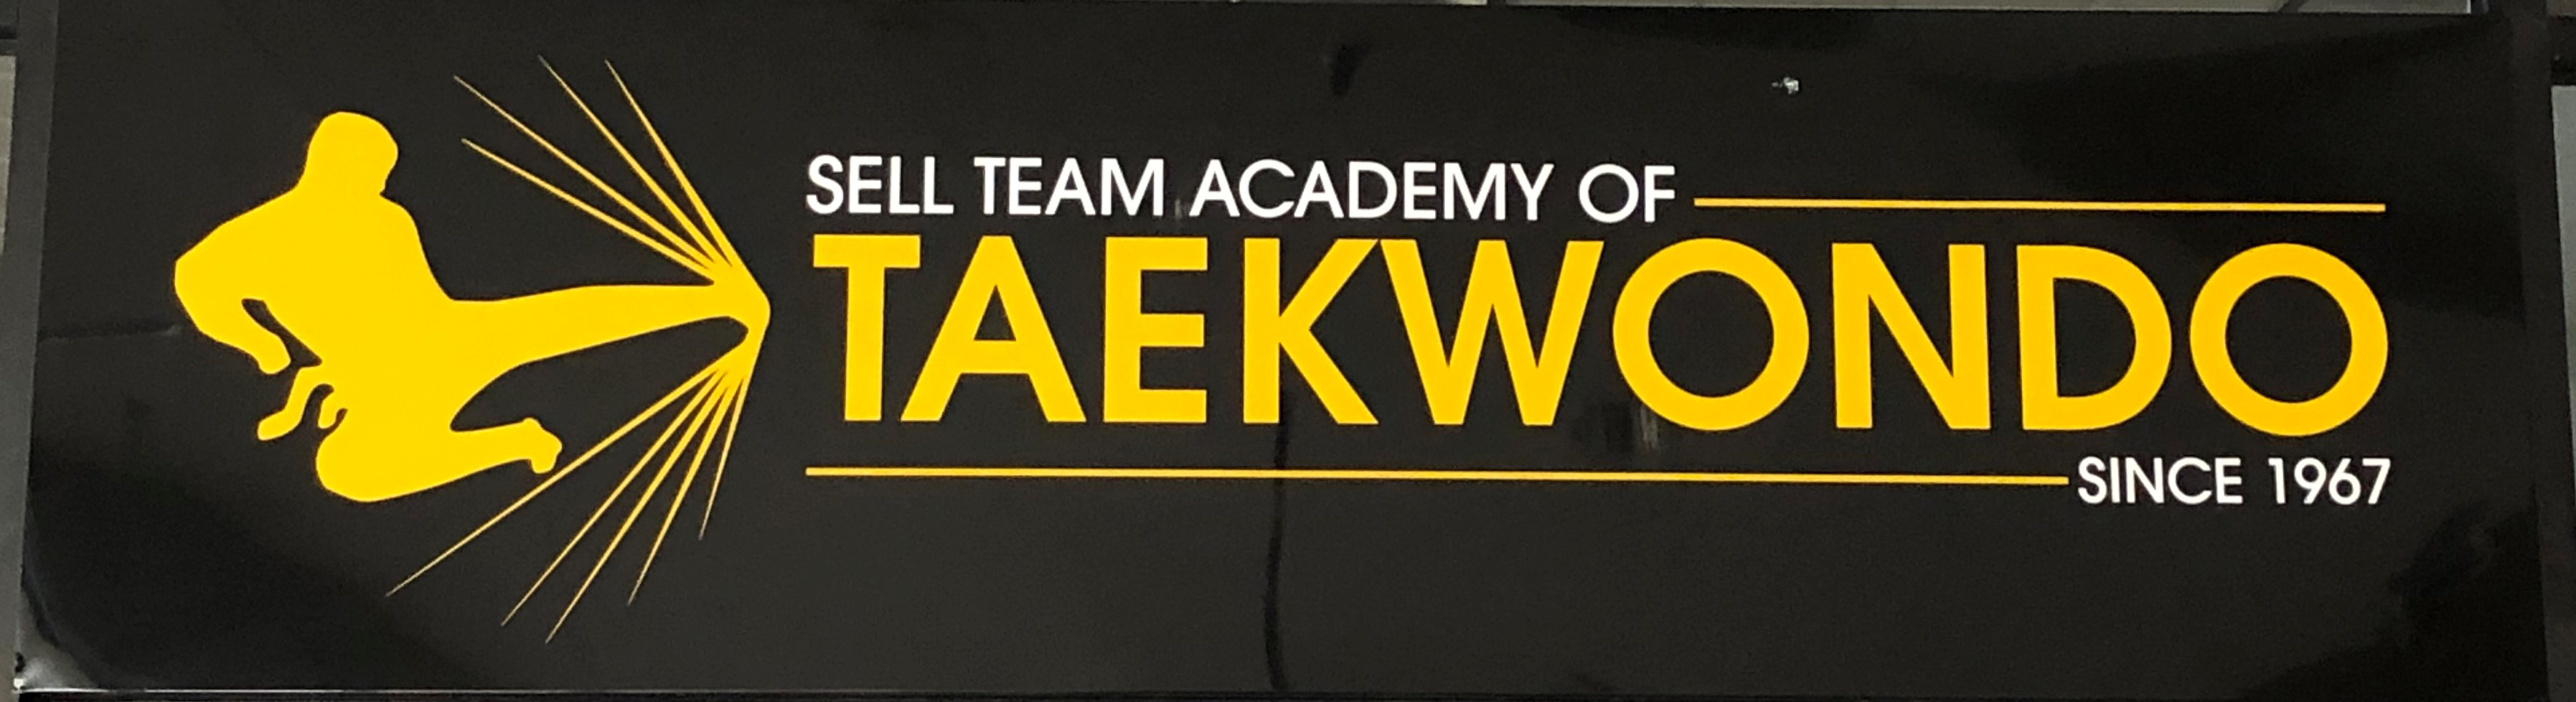 Sell Team Academy Of Taekwondo Logo